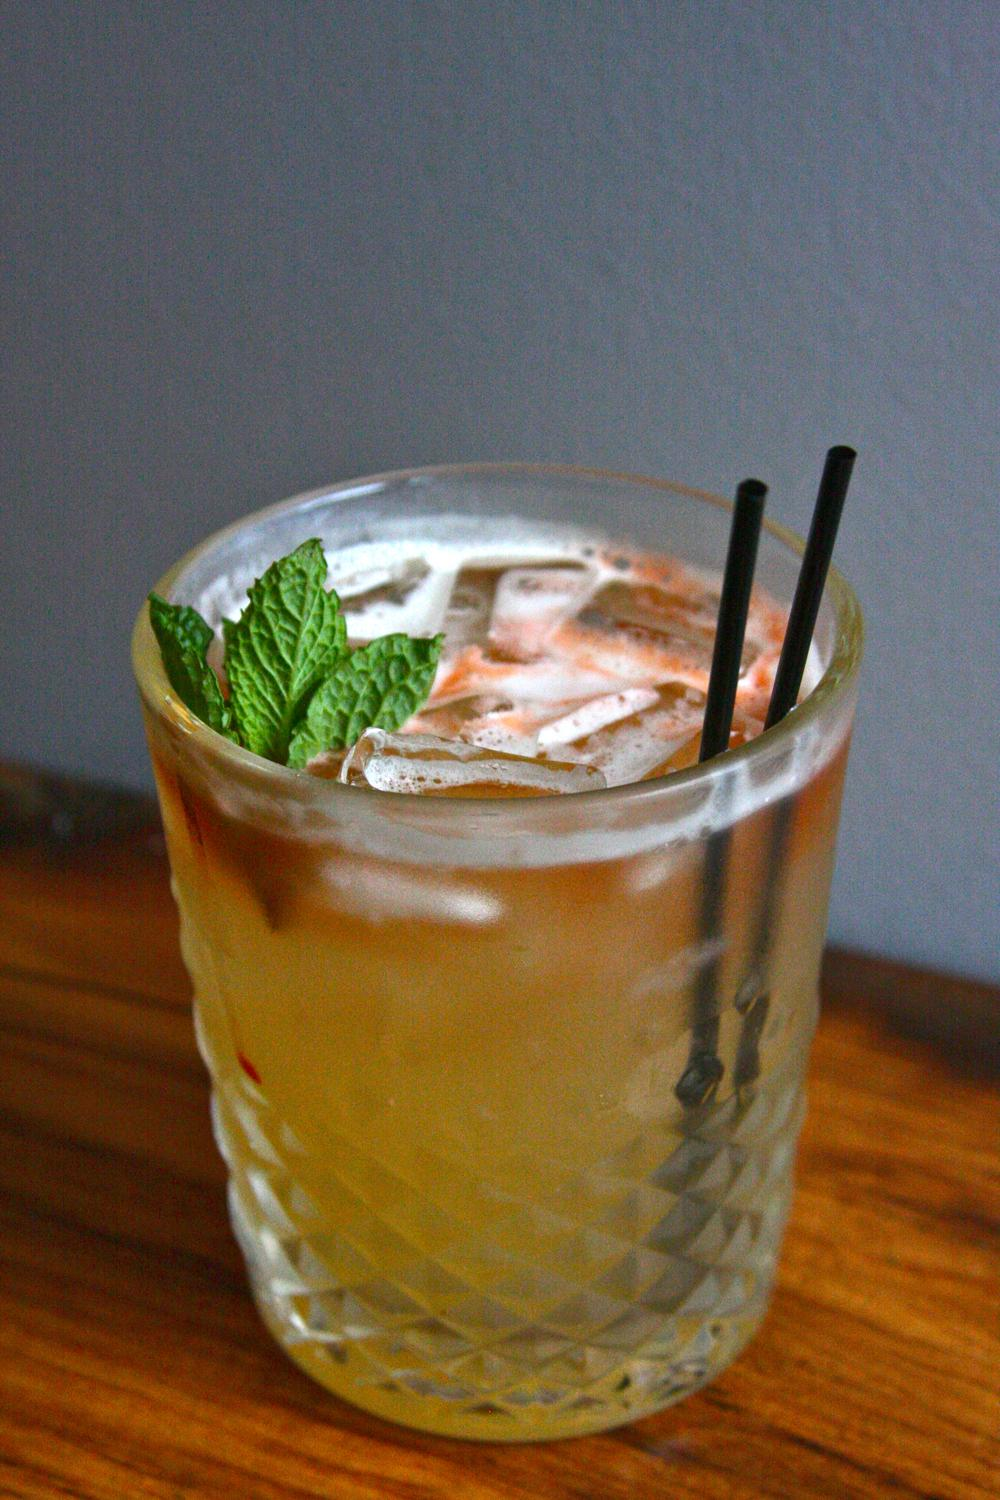 Montgomery: Bulleit Rye whiskey, peach simple syrup, and lemon soda / Image: Molly Paz